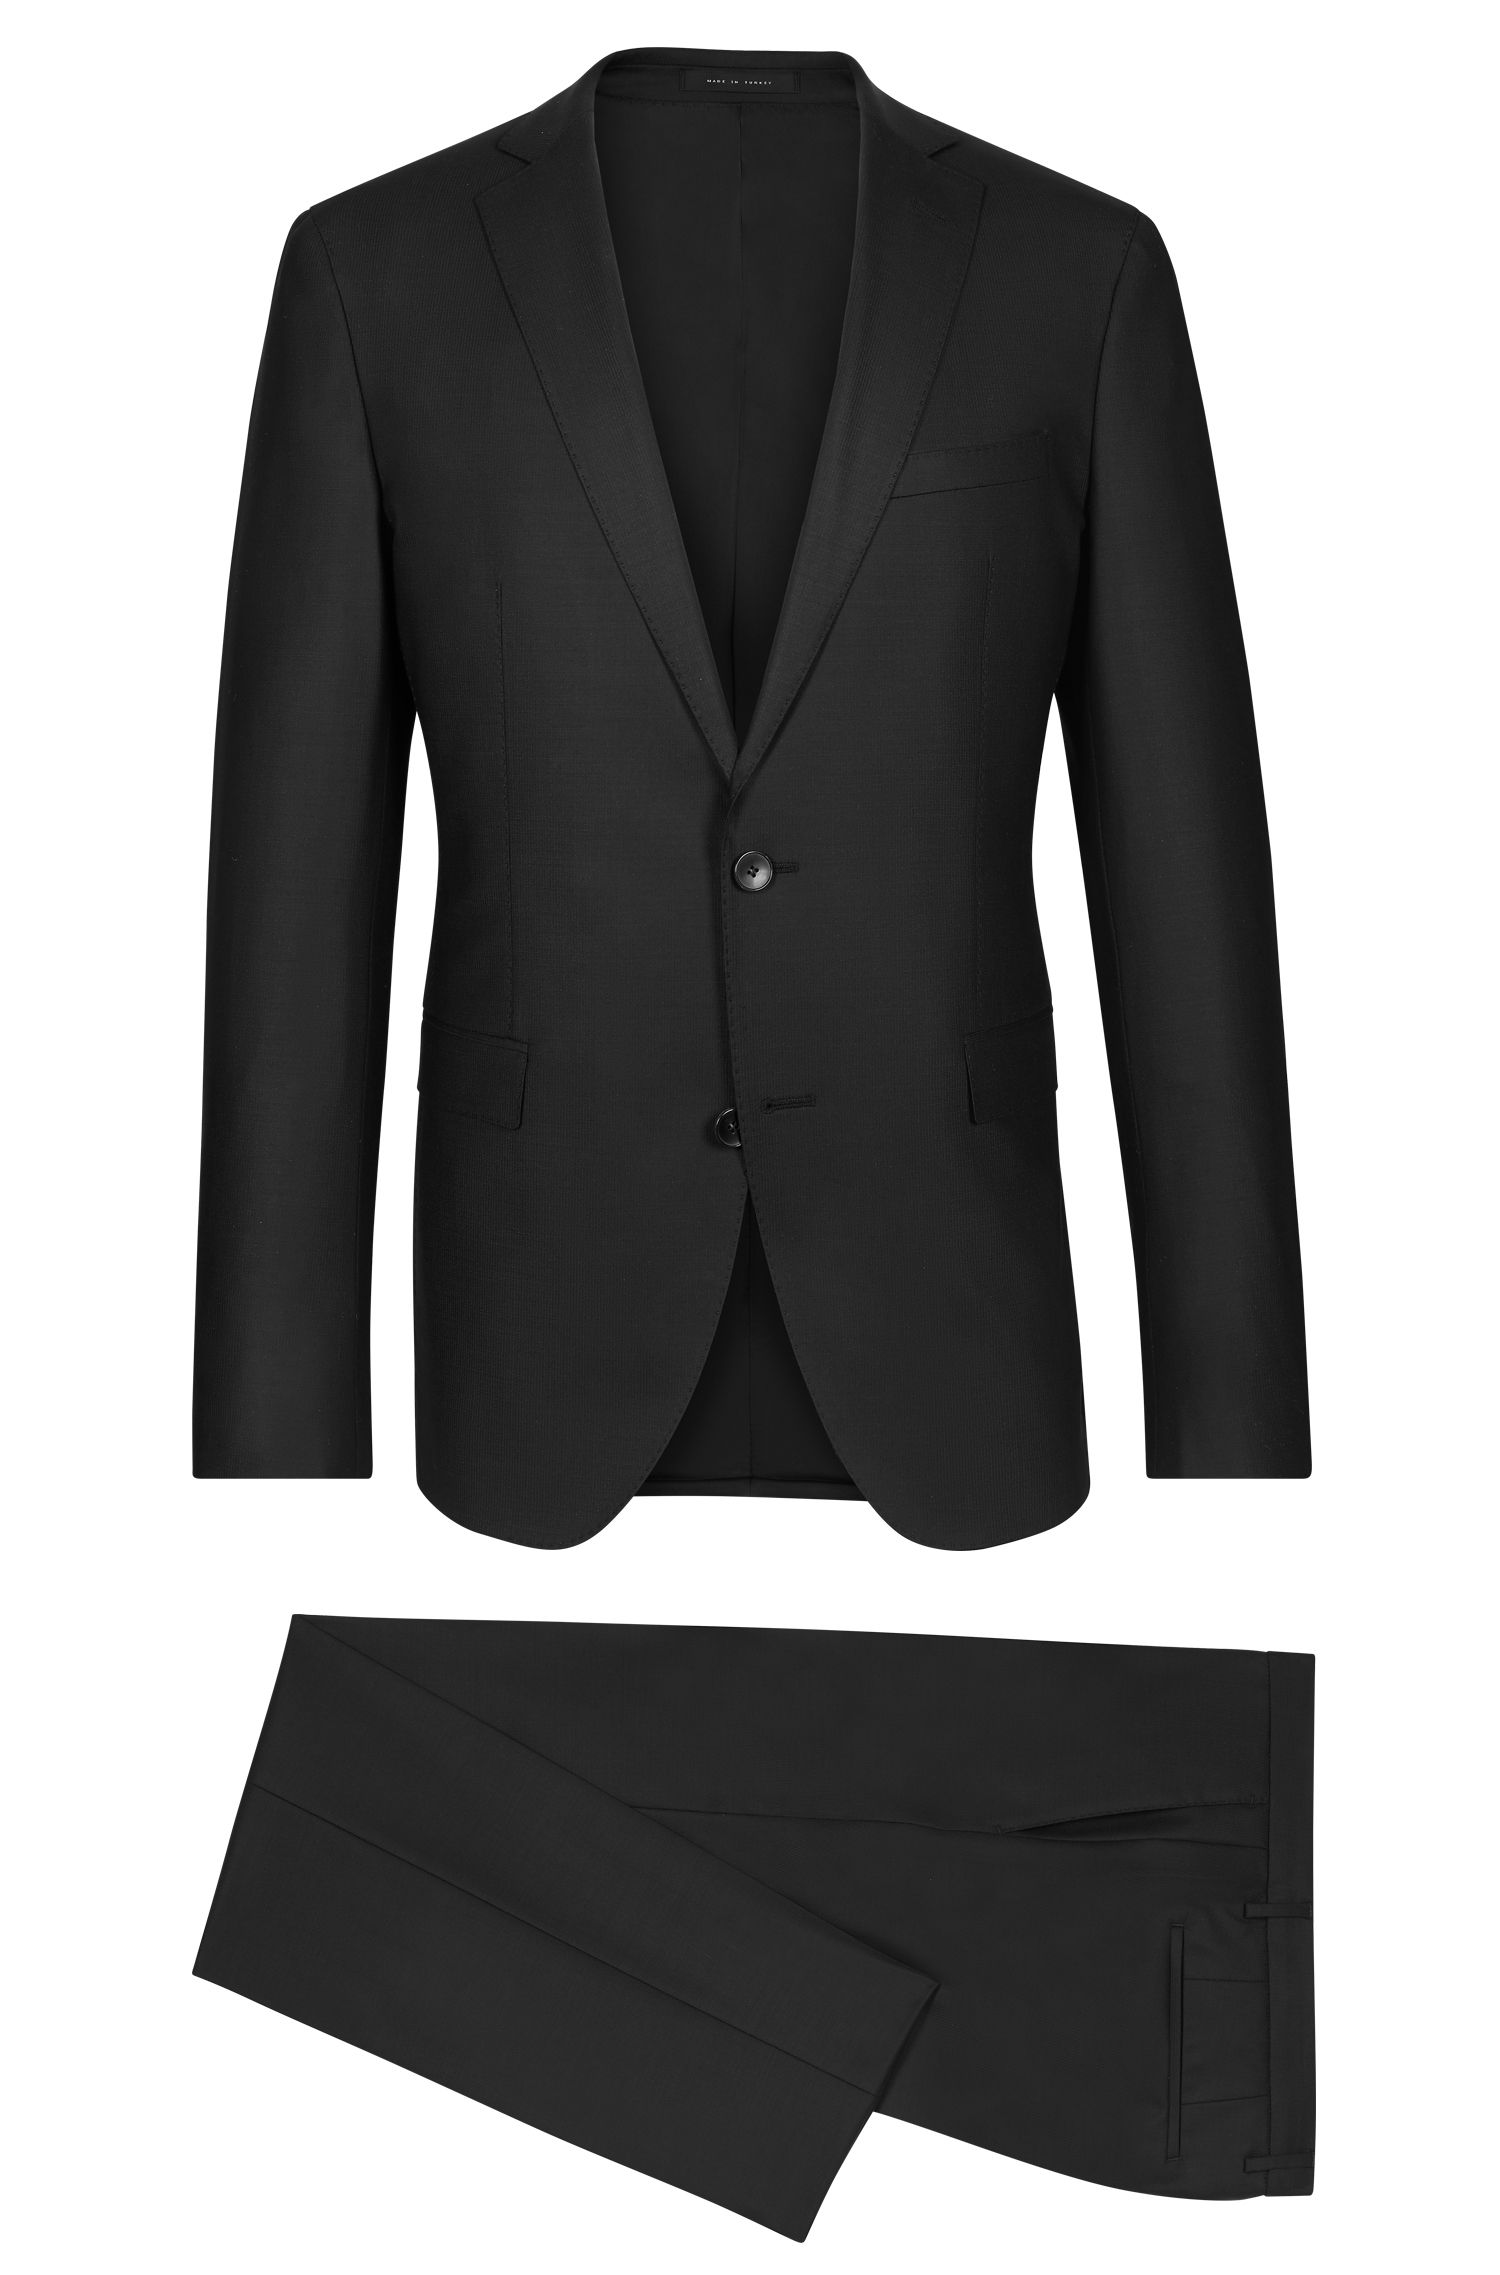 Stretch Virgin Wool Textured Suit, Extra-Slim Fit | Reyno/Wave, Black